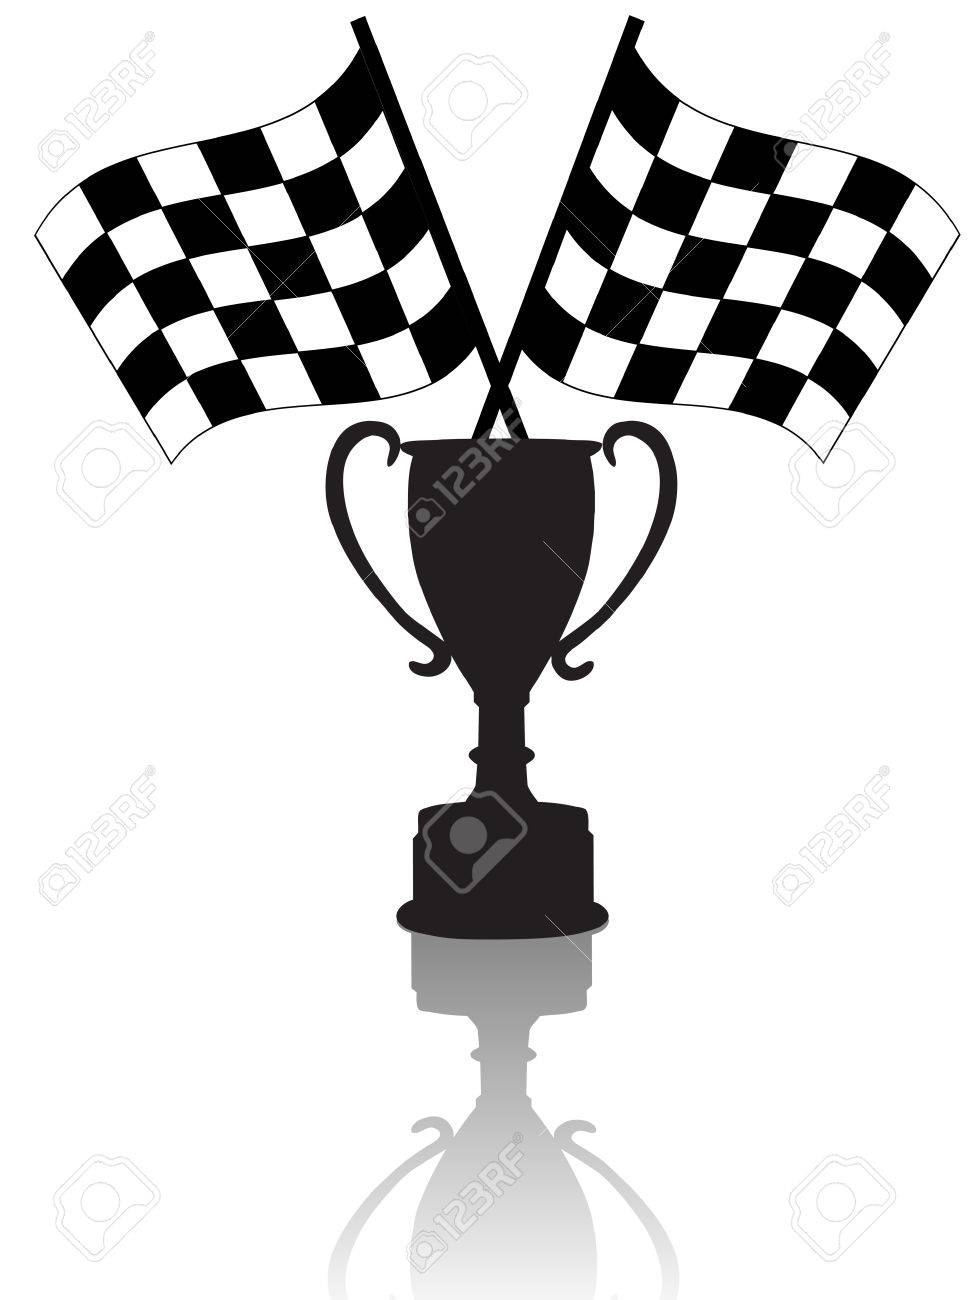 Silhouettes Of Crossed Checkered Flags & A Victory Trophy Cup ...